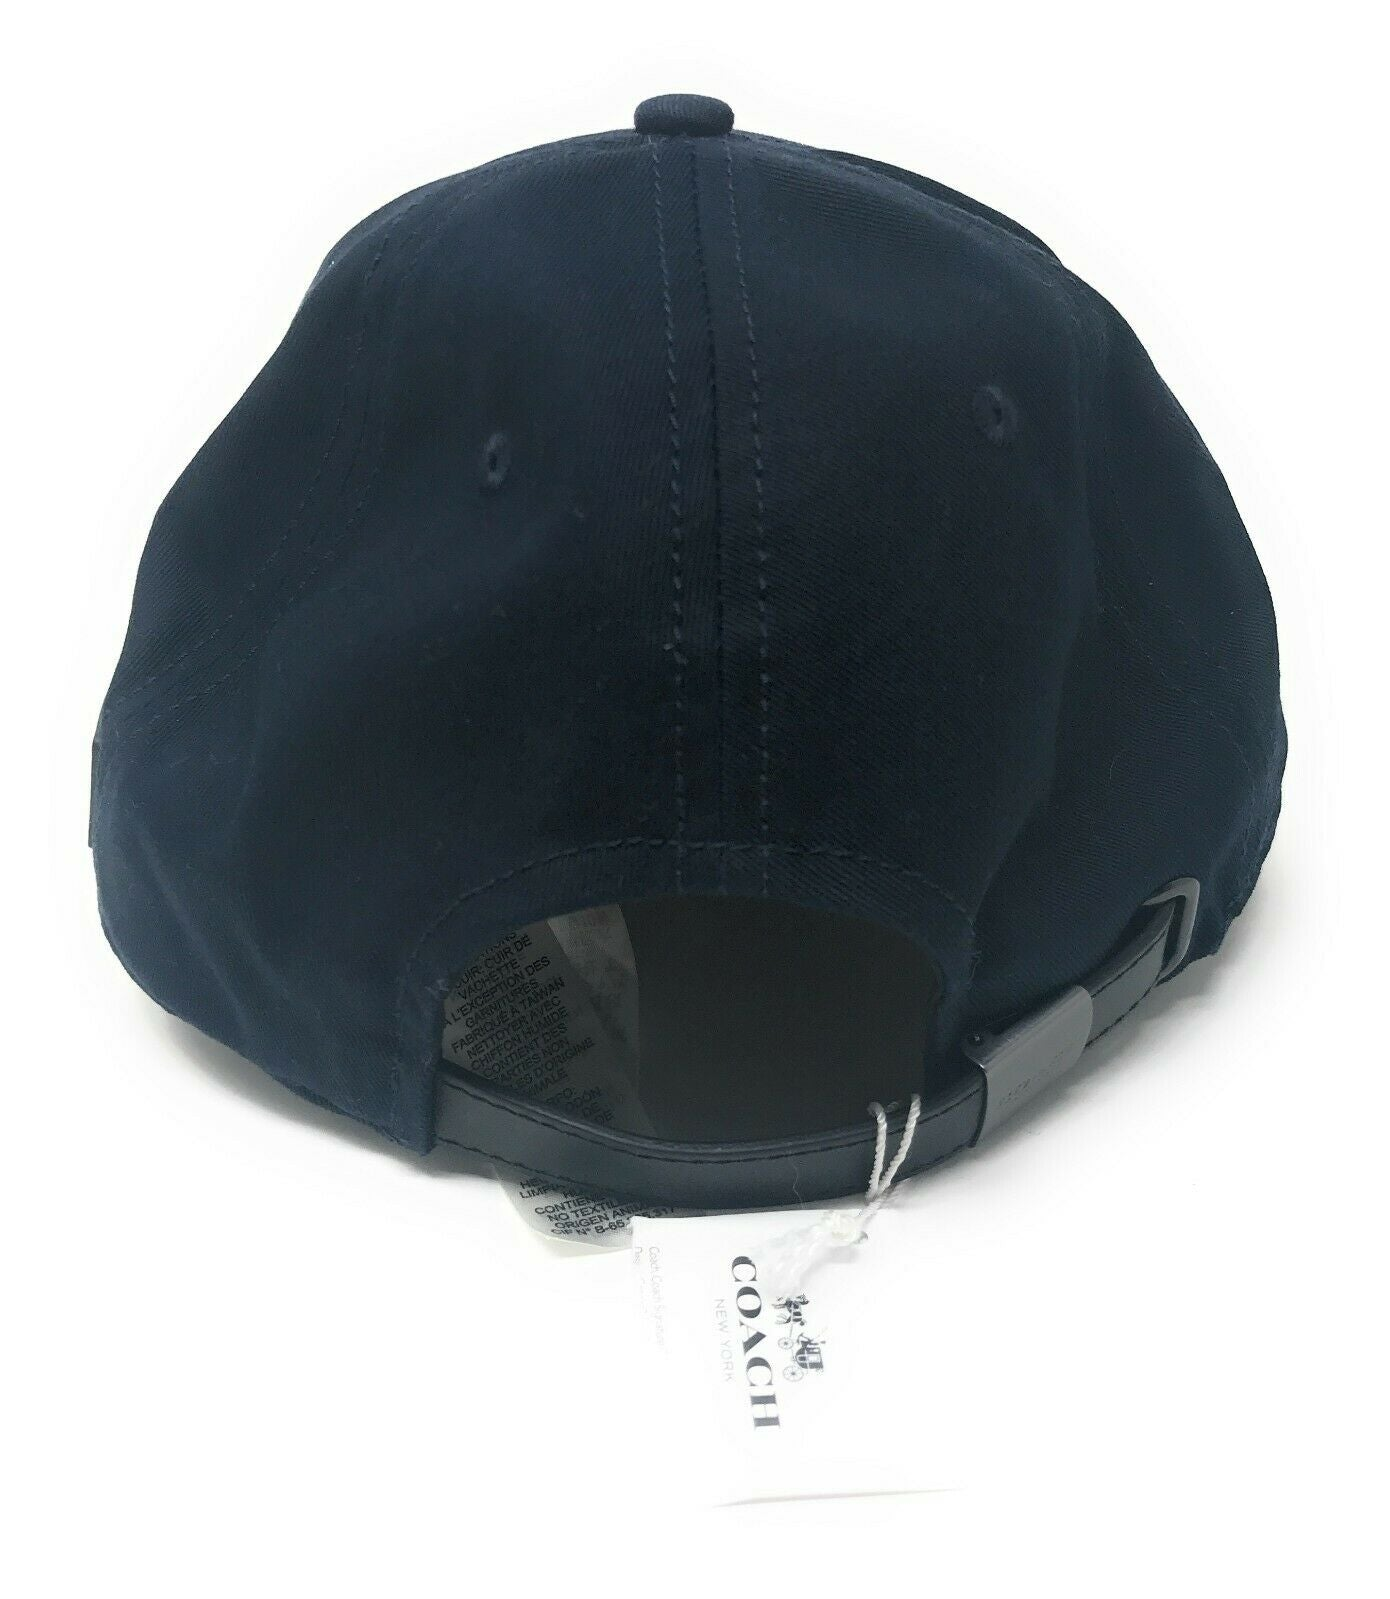 Coach Baseball Cap Americana F26807 with Leather Trim $95